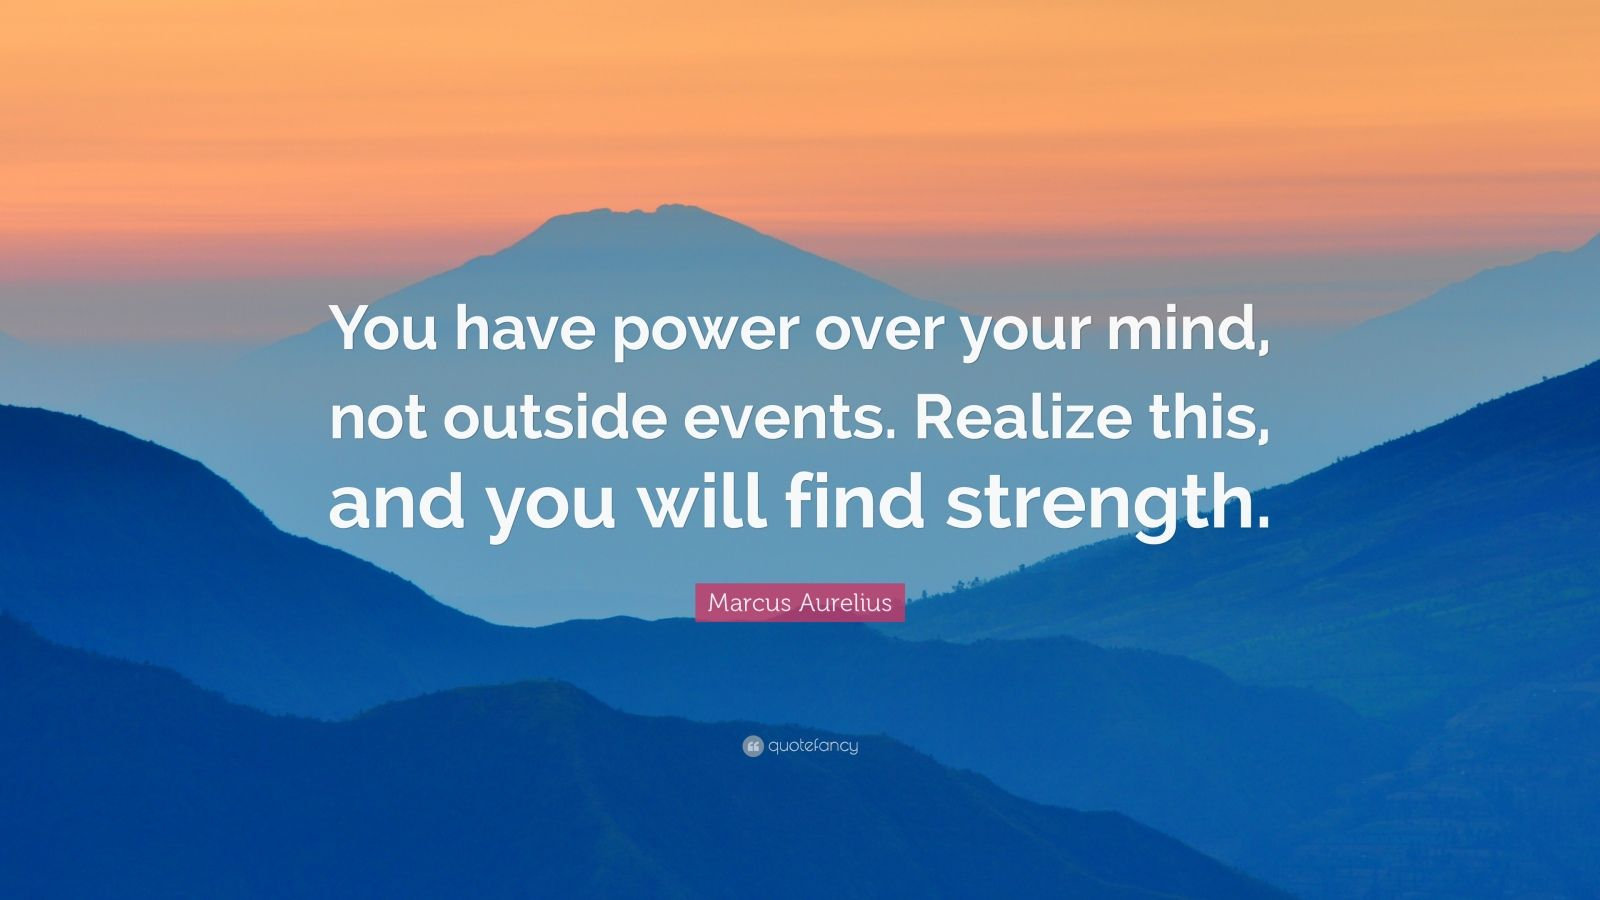 John Lennon Wallpaper Quotes Marcus Aurelius Quote You Have Power Over Your Mind Not